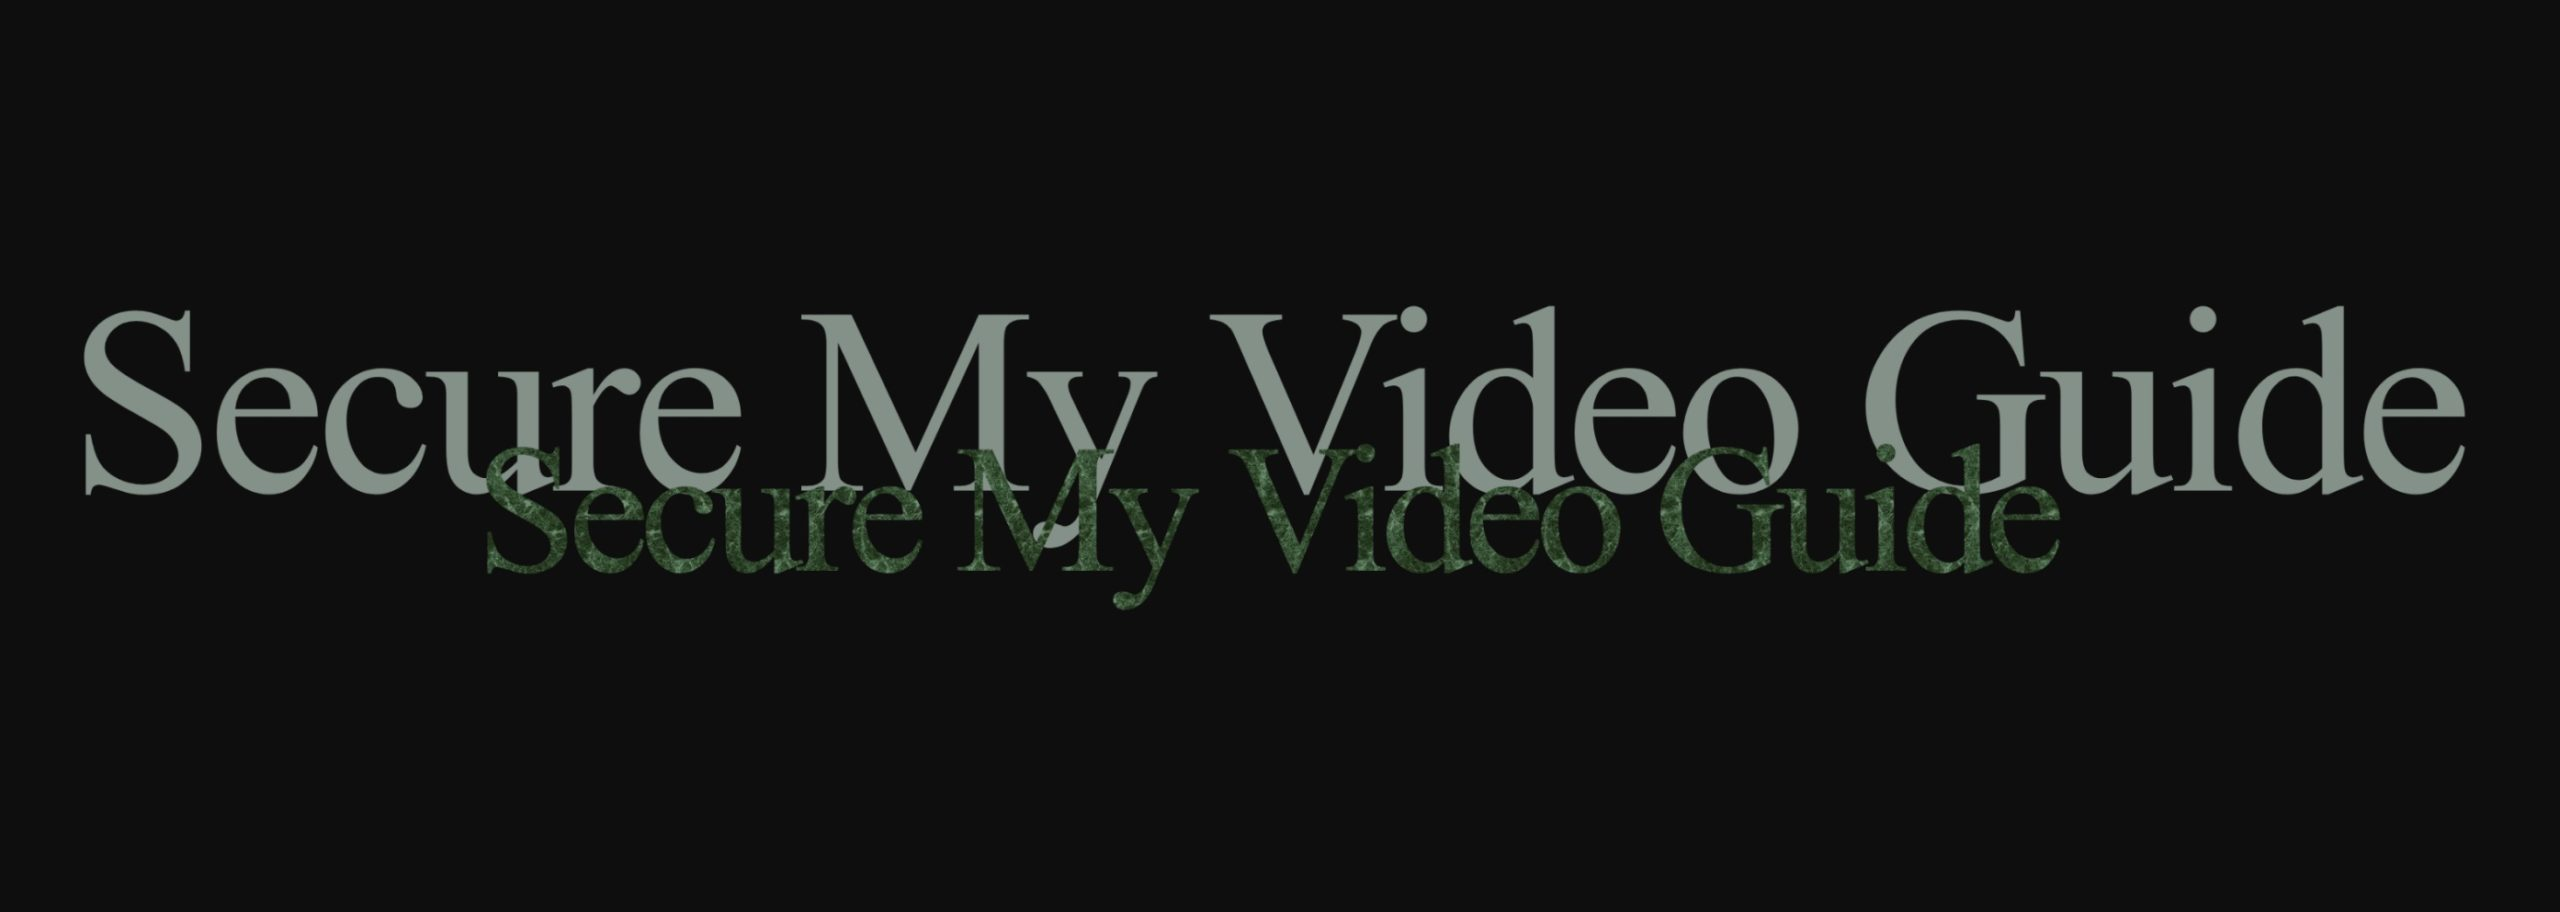 Secure My Video Guide